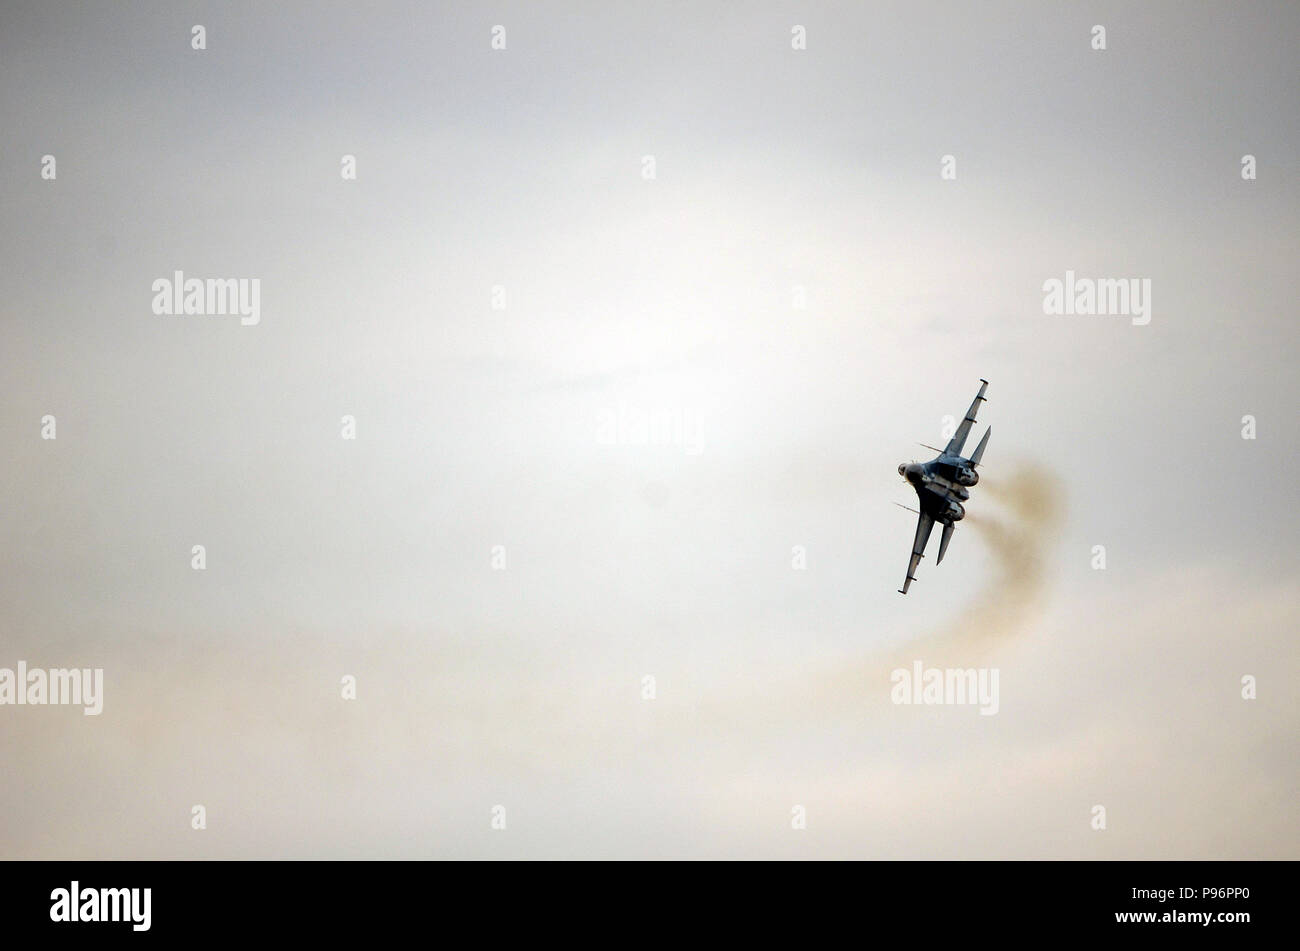 Ukrainian Air Force Su-27 (58) Flanker - Stock Image